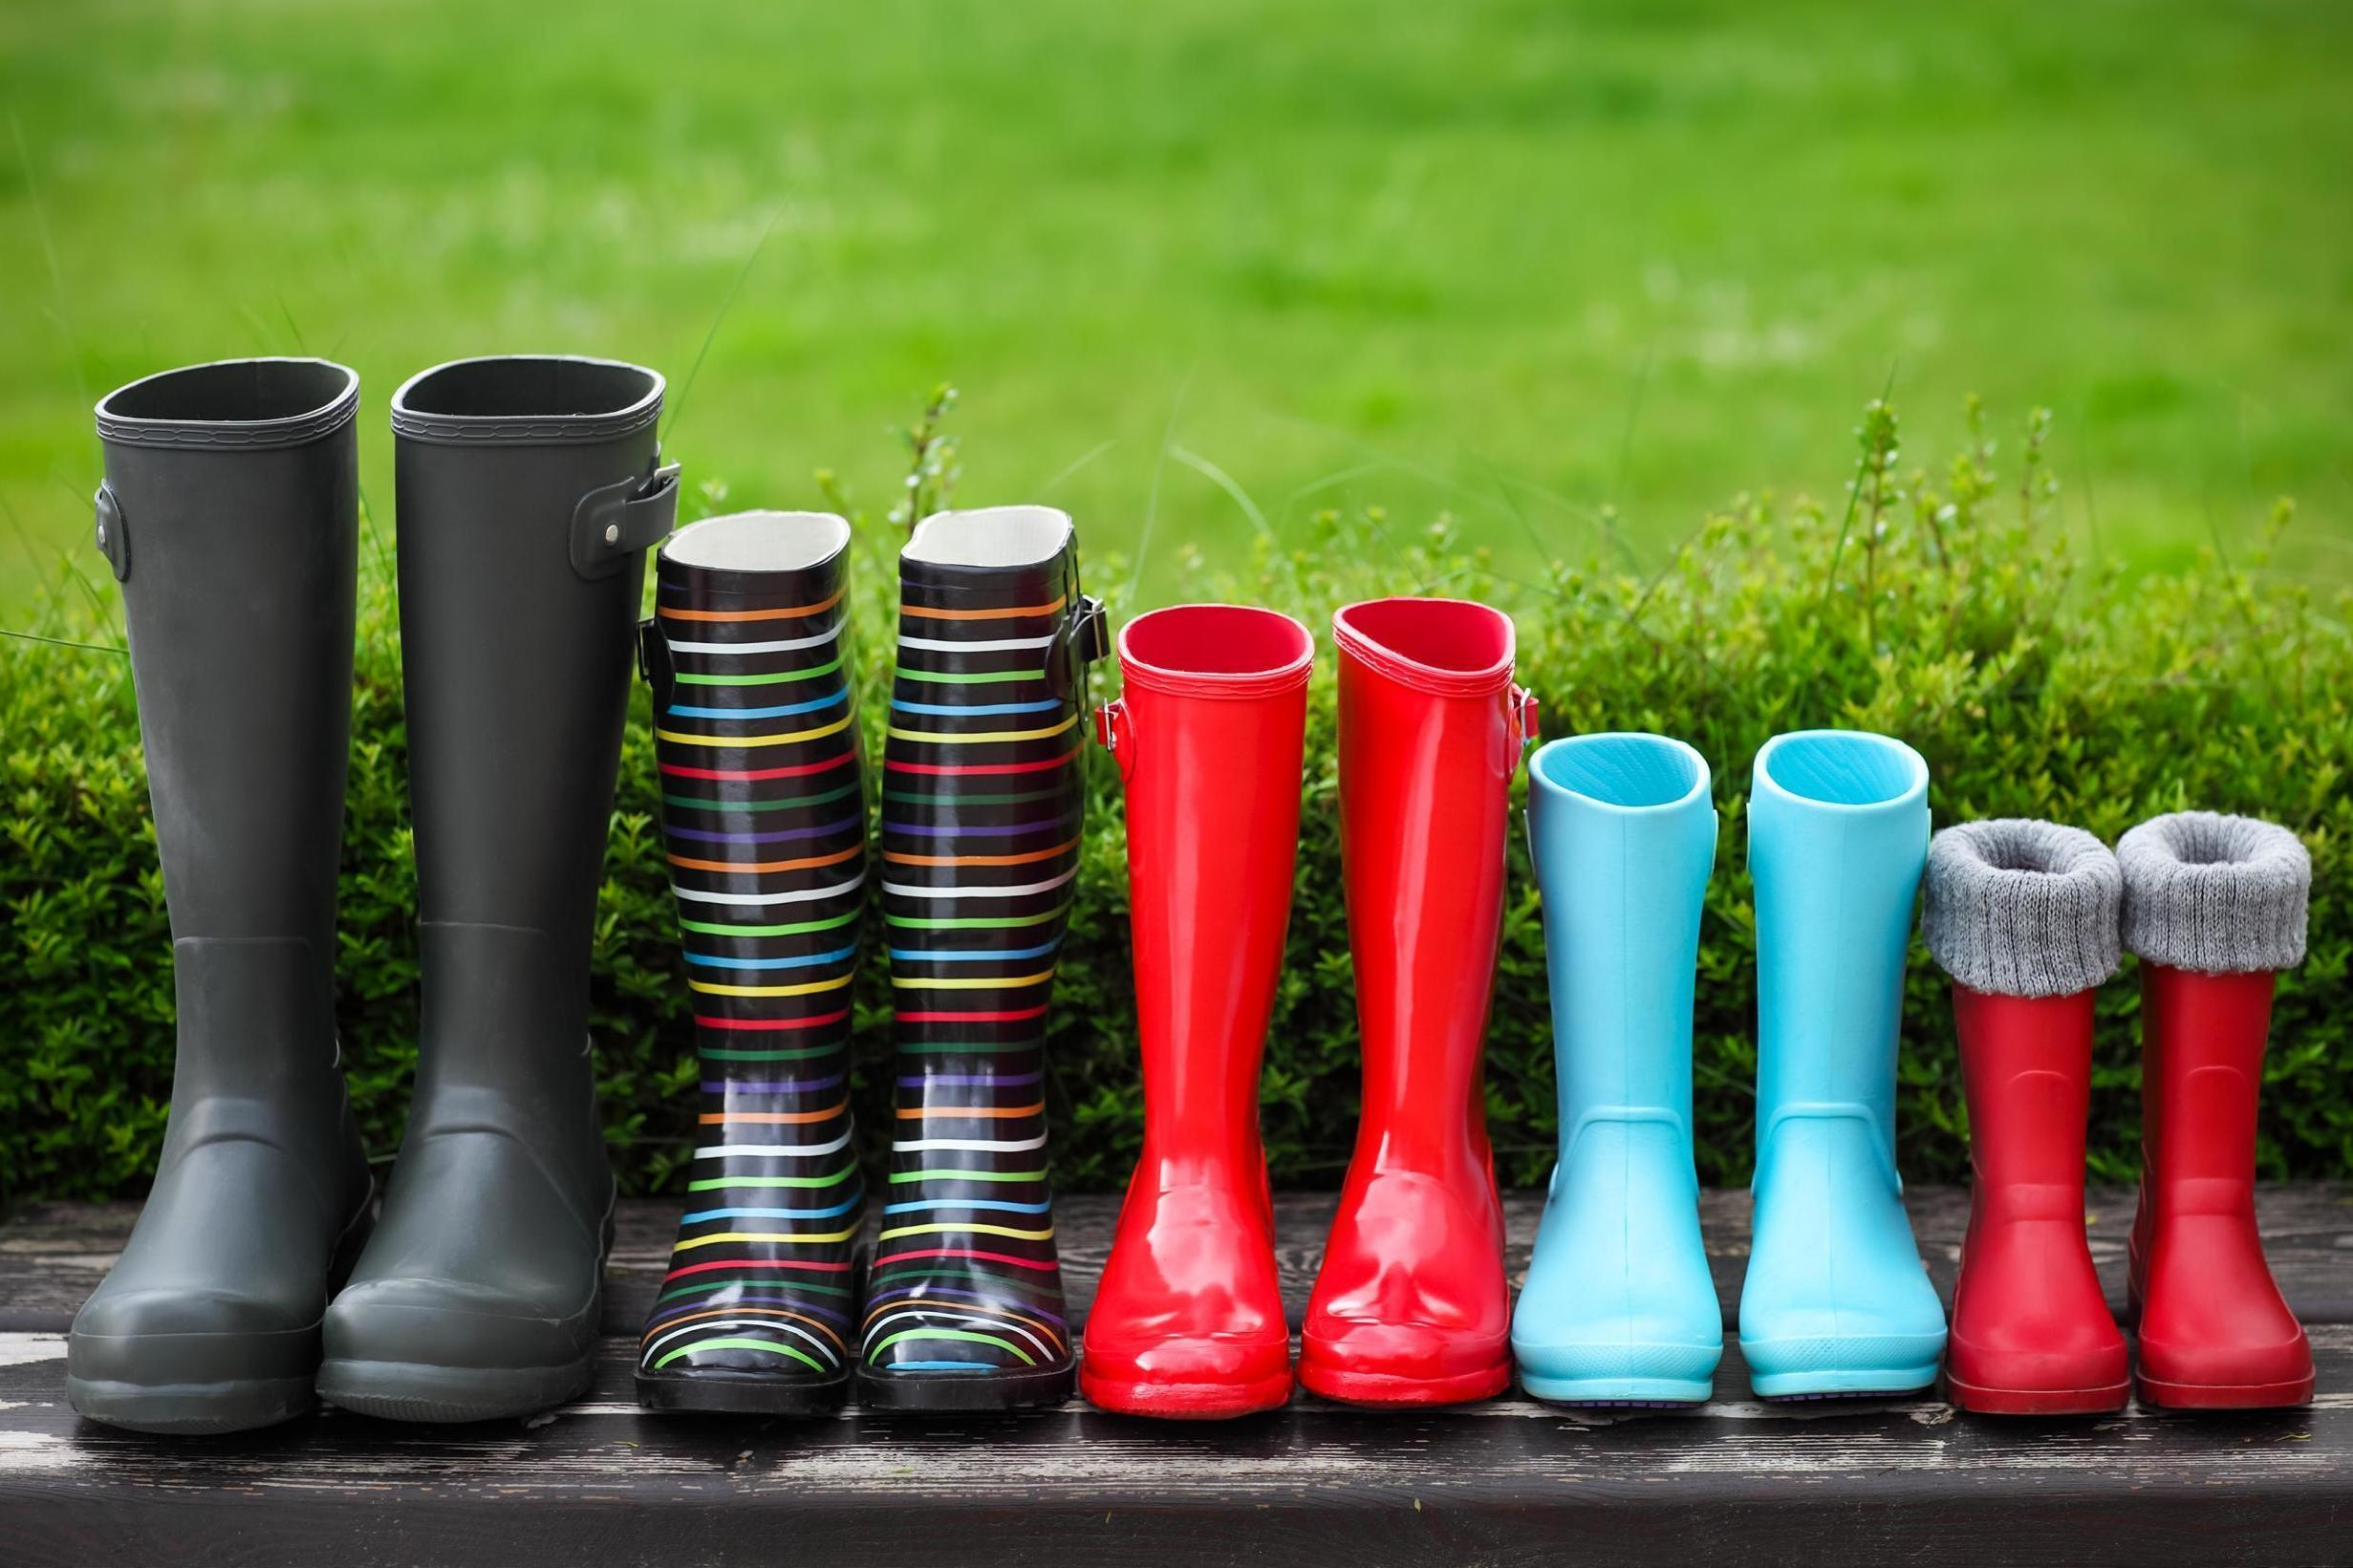 Wellies: Three fun historical facts as Google Doodle honours wellington boots | The Independent